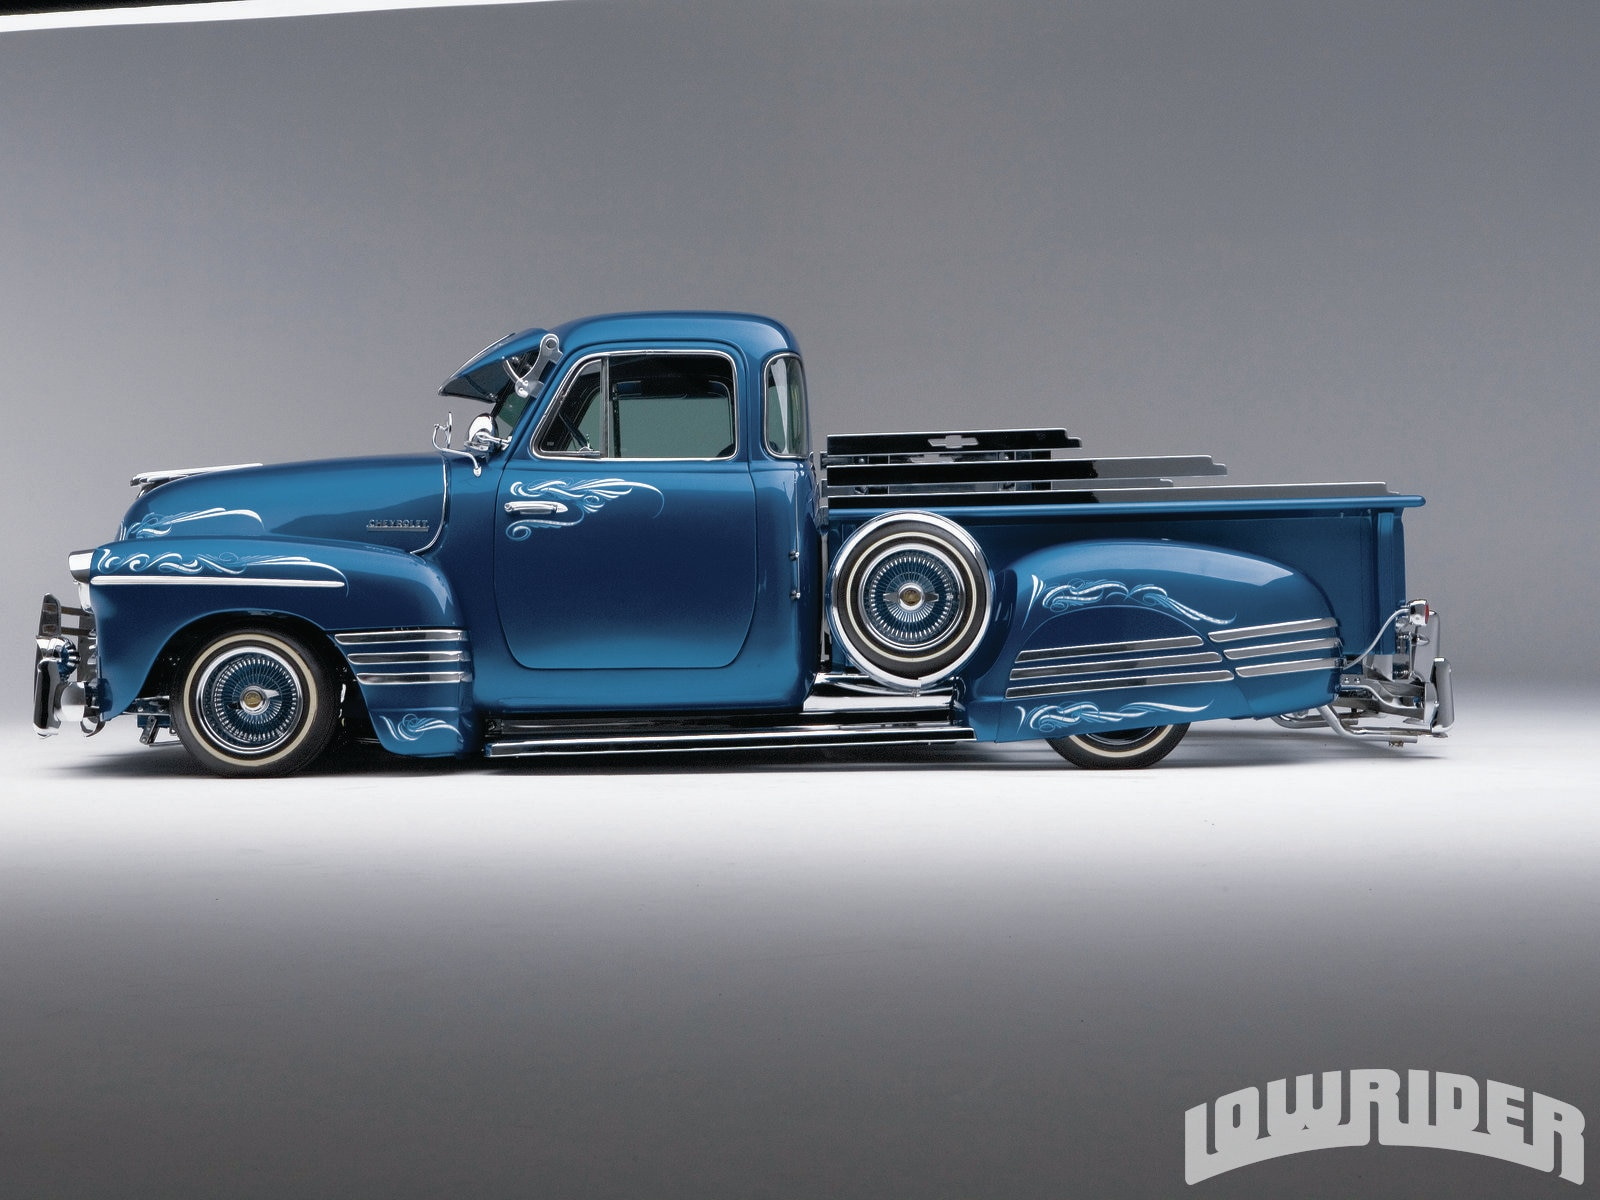 1951 Chevrolet Truck Lowrider Magazine Paint Colors 2 12